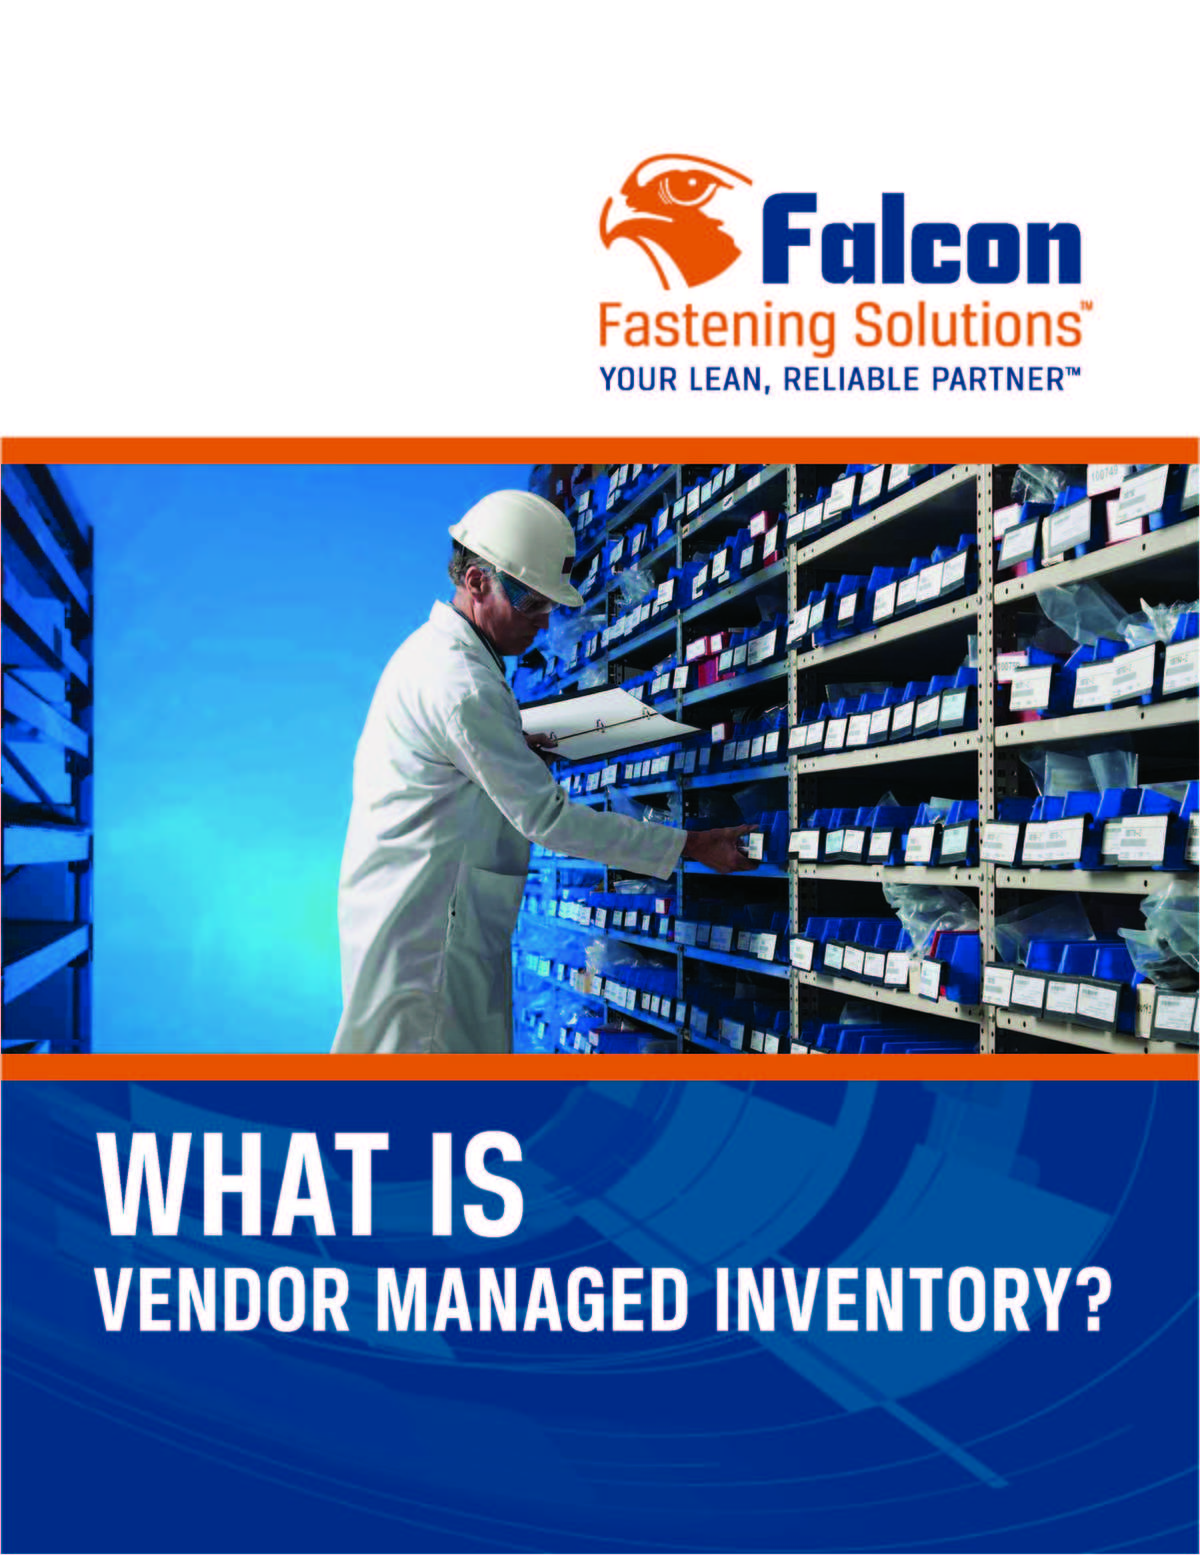 What Is Vendor Managed Inventory (VMI)?